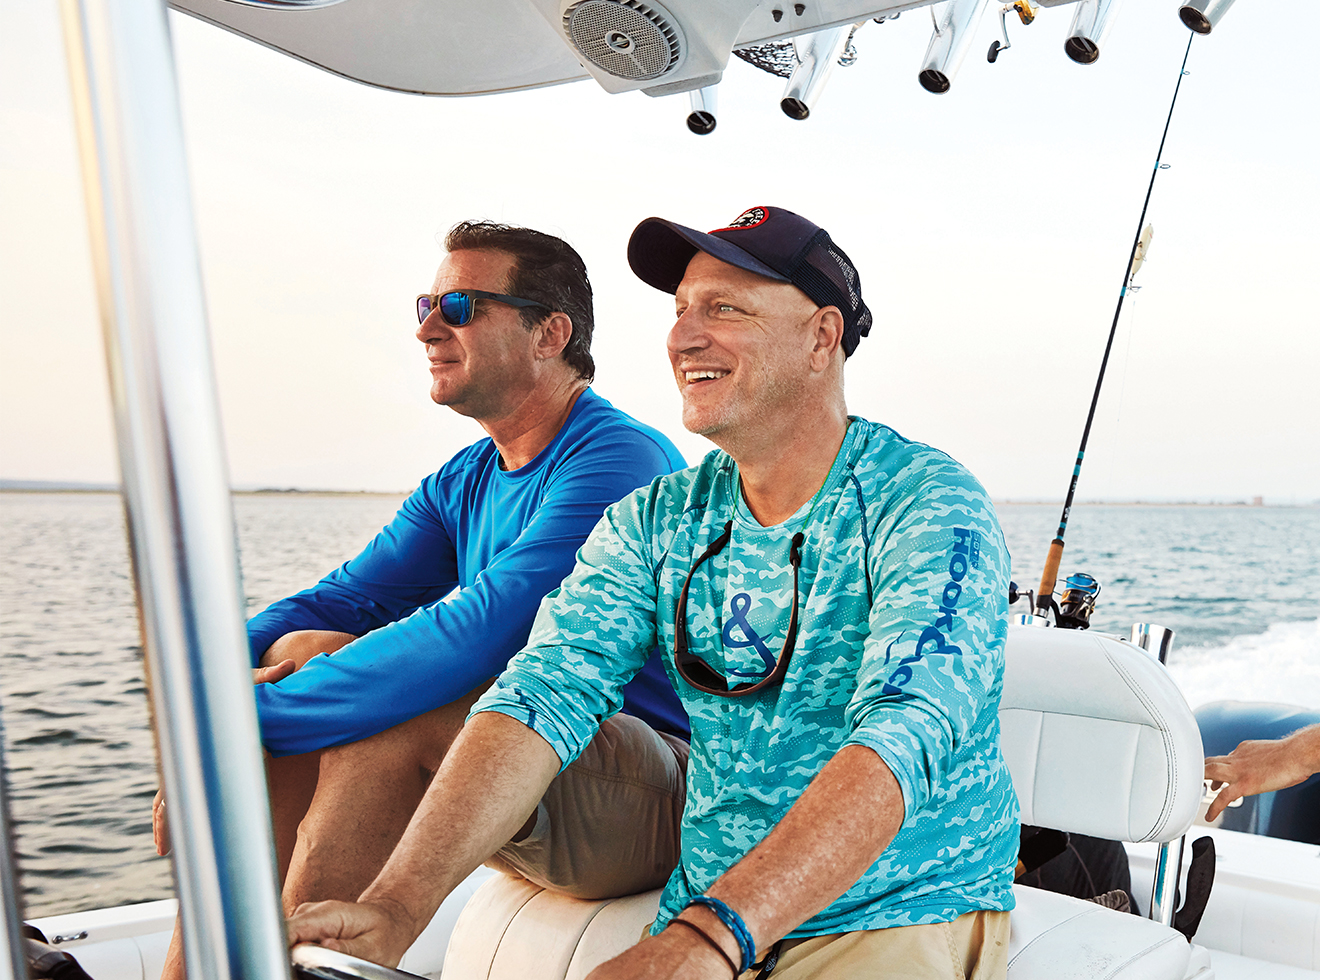 Colicchio, right, with his longtime friend, chef Kerry Heffernan, off New York's Grand Banks.